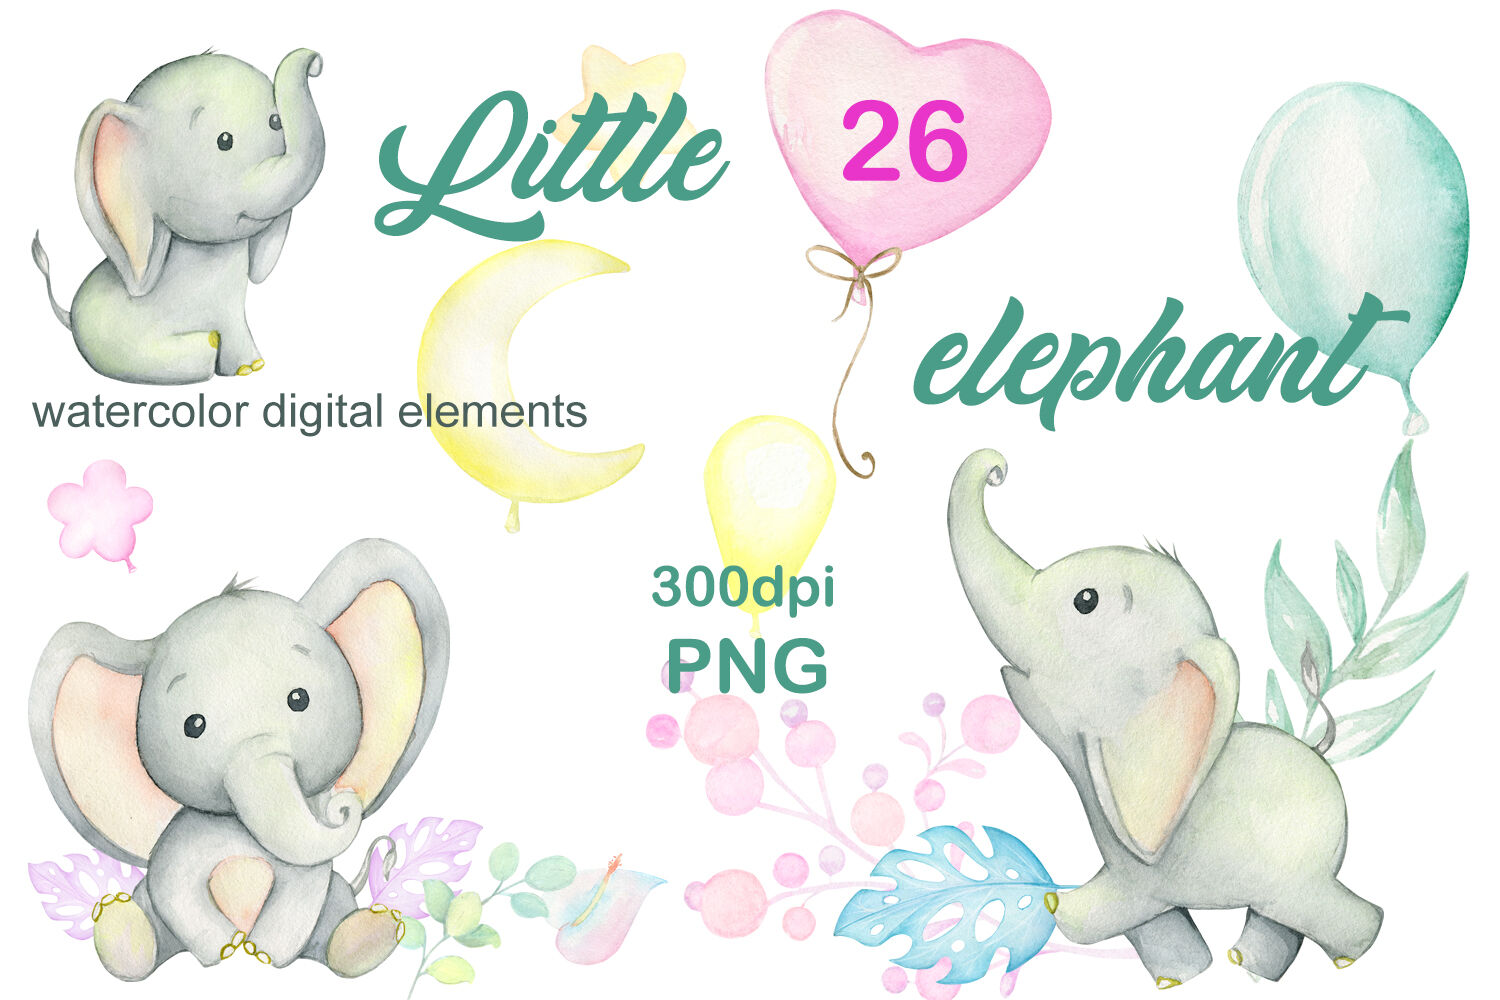 Cute Baby Elephants Watercolor Tropical Set Elephant Tropical Plant By Nlia2020 Thehungryjpeg Com Elephant png free vector we have about (61,541 files) free vector in ai, eps, cdr, svg vector illustration graphic art design format. cute baby elephants watercolor